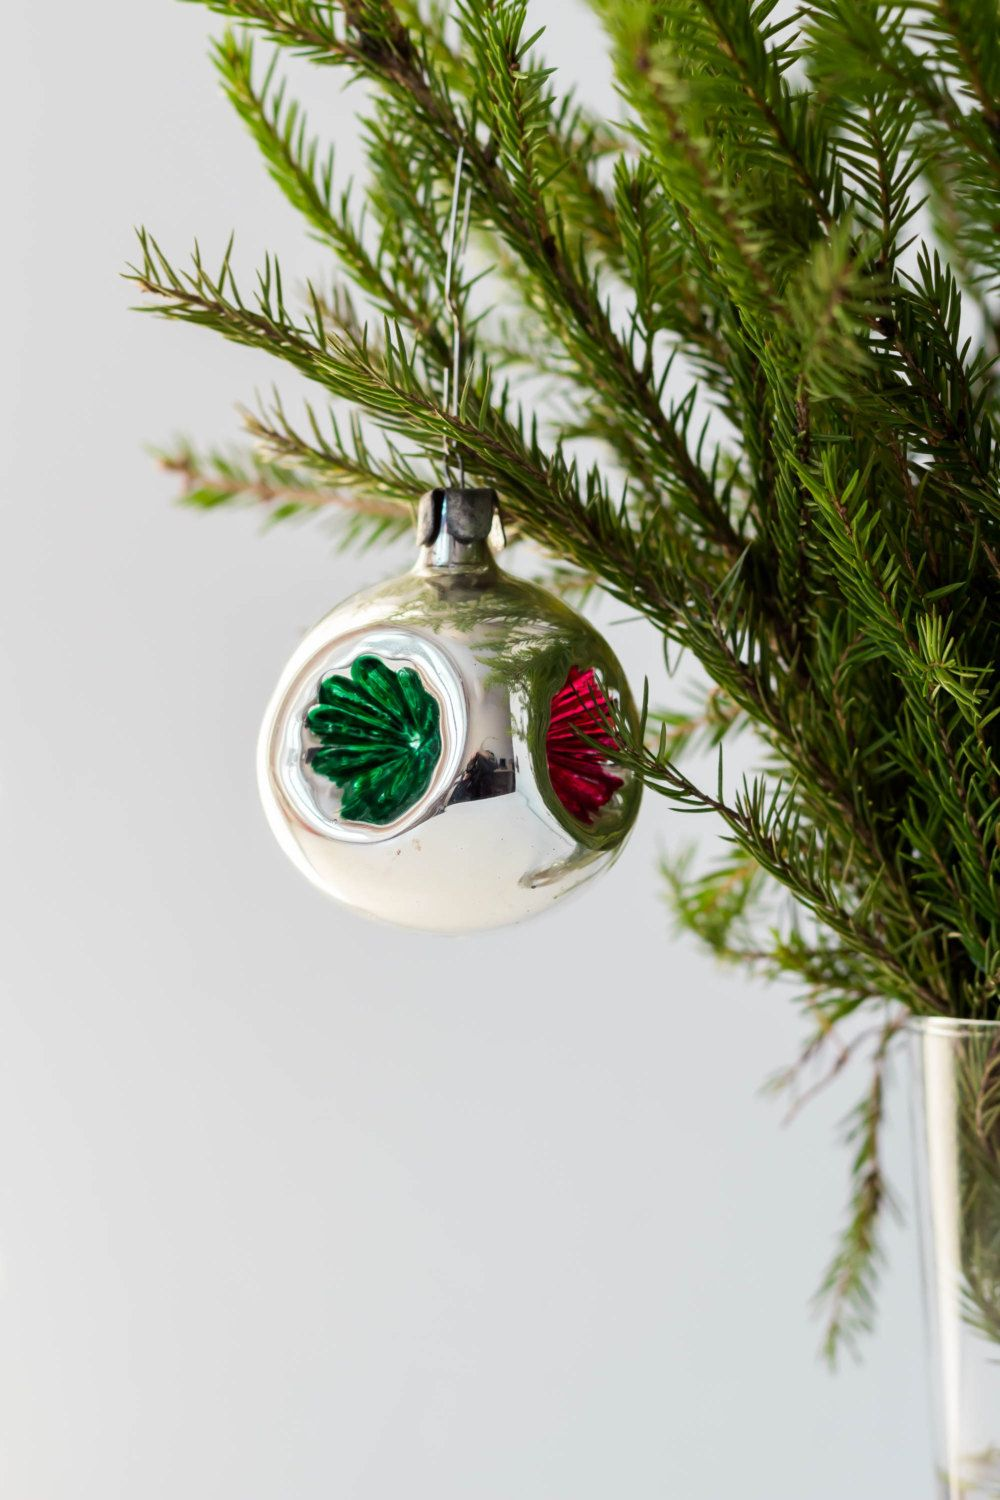 Mercury Balls Decorations Vintage Christmas Ball In Silver With Red And Green Christmas